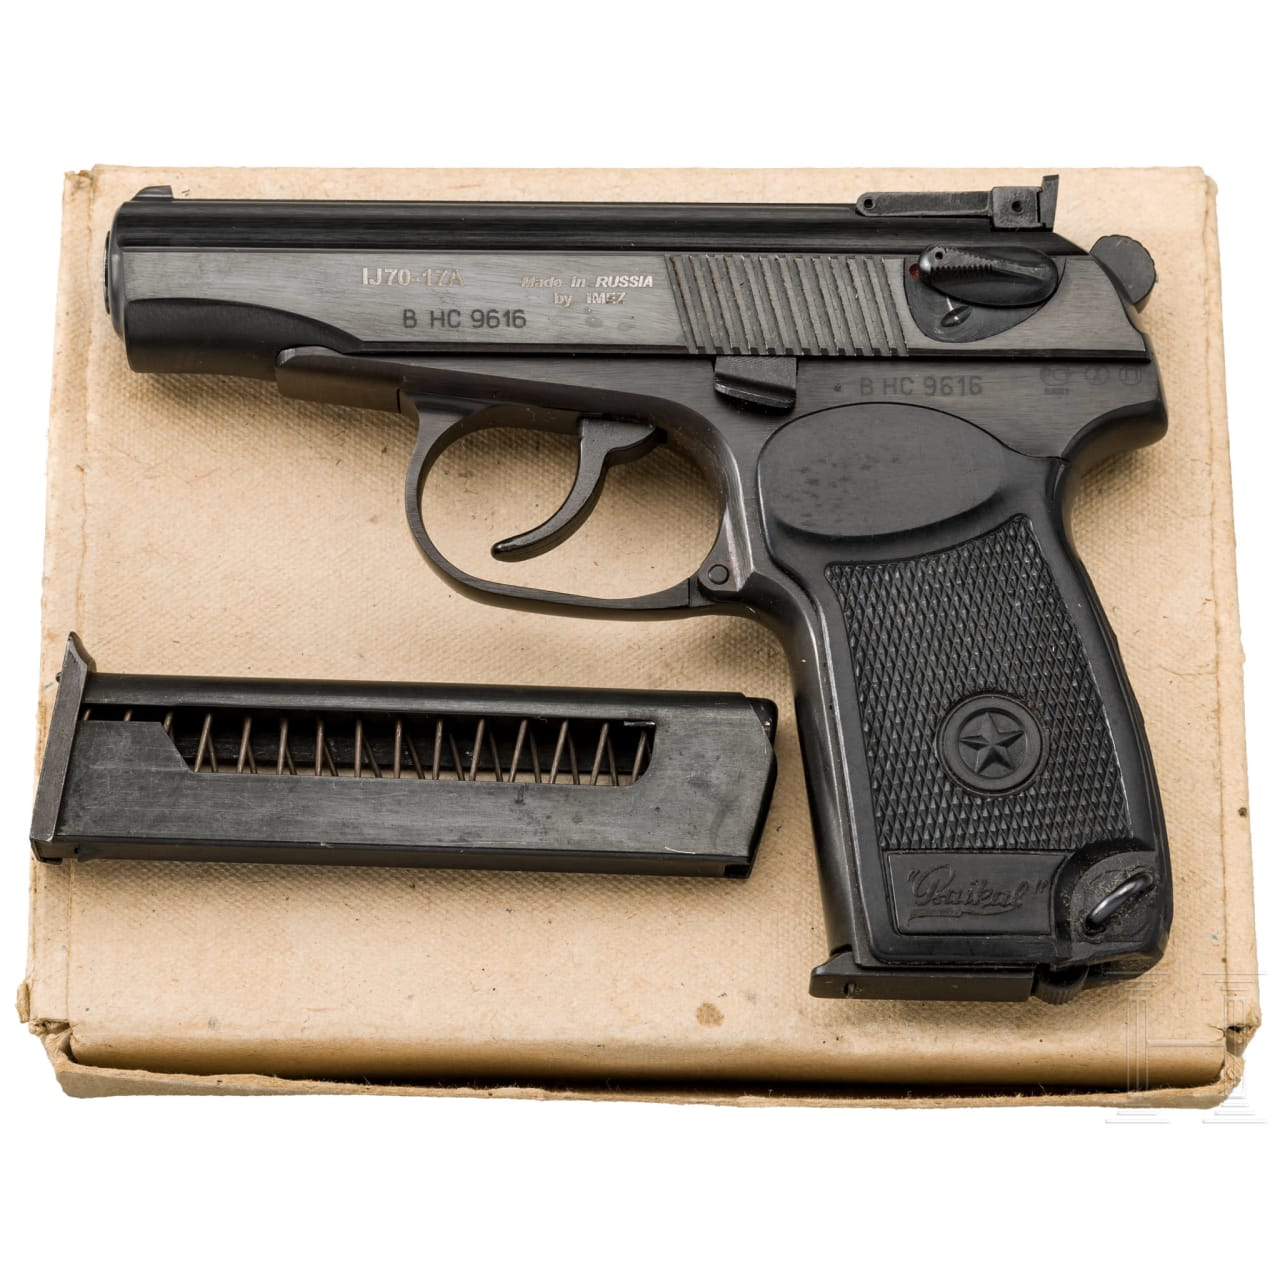 IMEZ IJ70-17A Makarov, 4mm M20 Umbau, in box